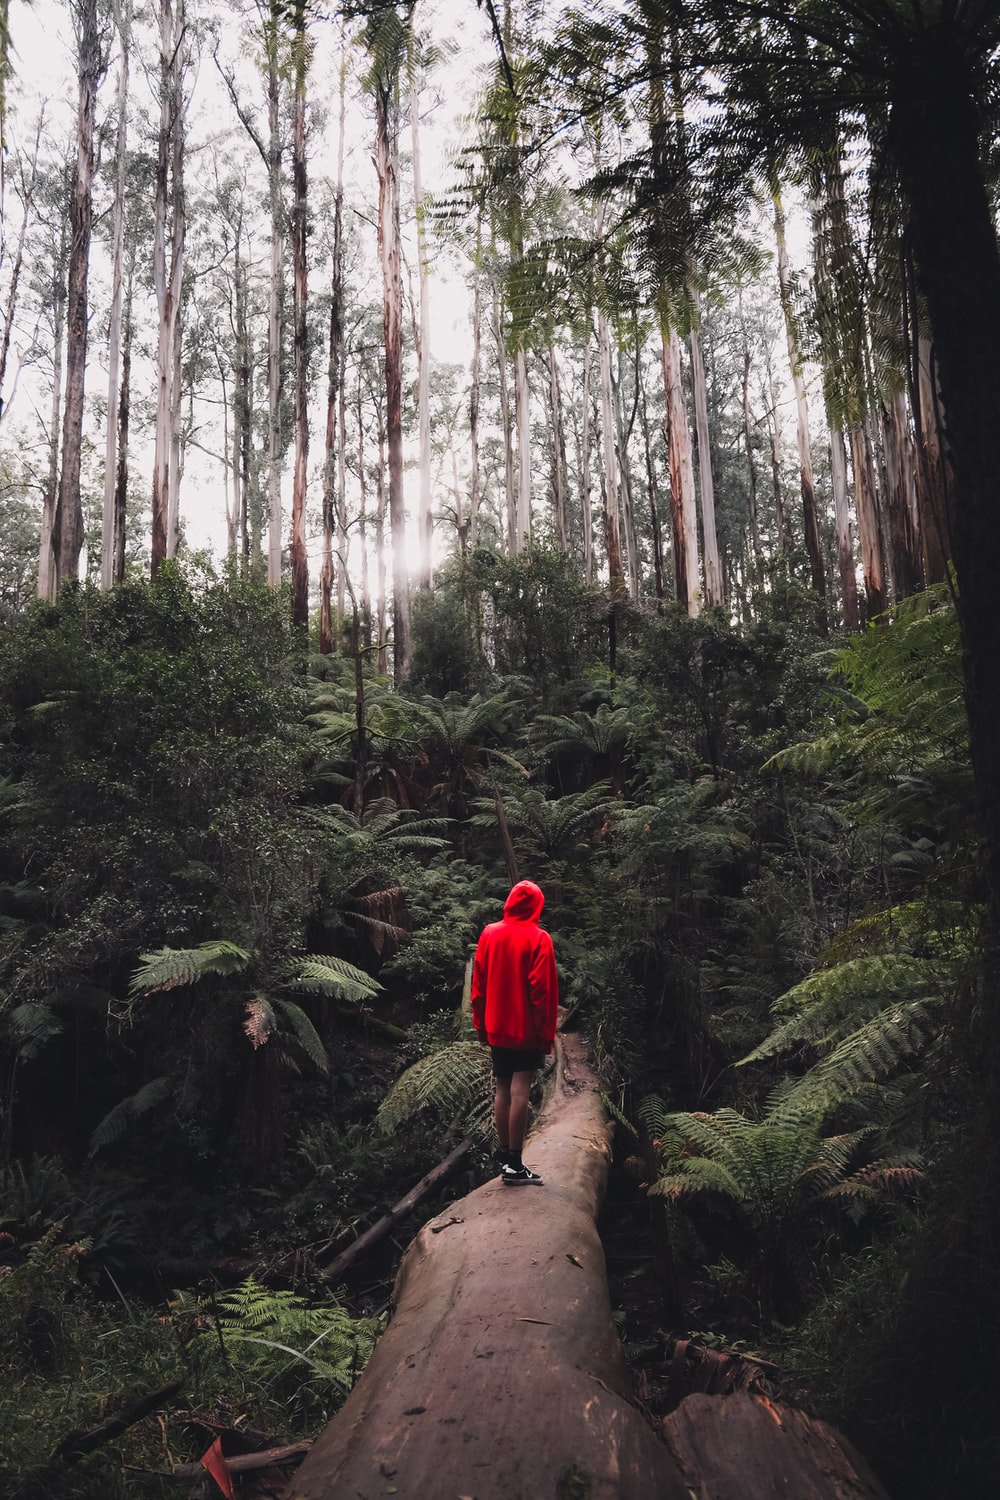 person in red hoodie standing on brown rock surrounded by green trees during daytime